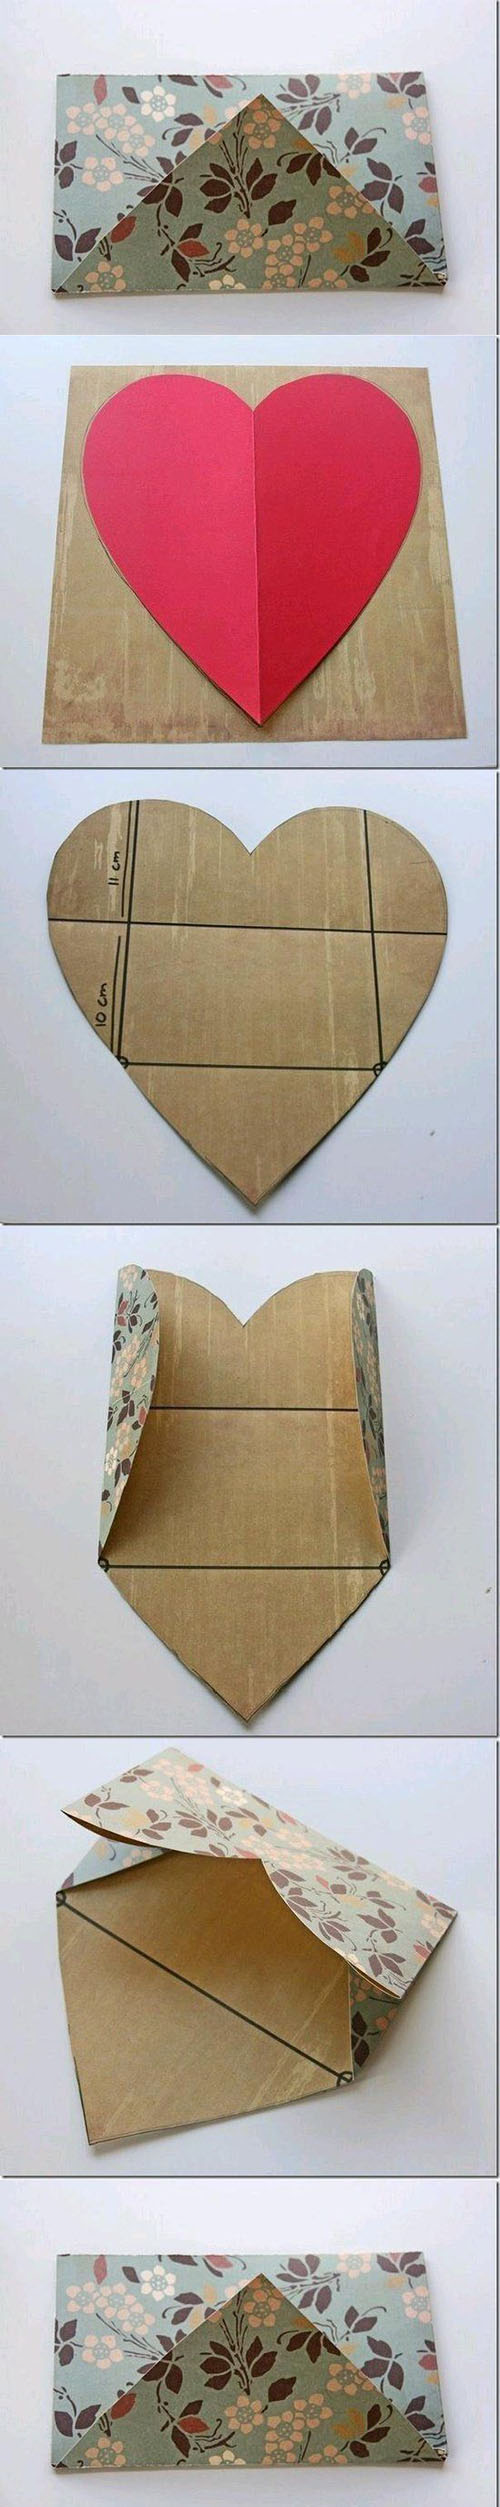 Create a nice envelope11